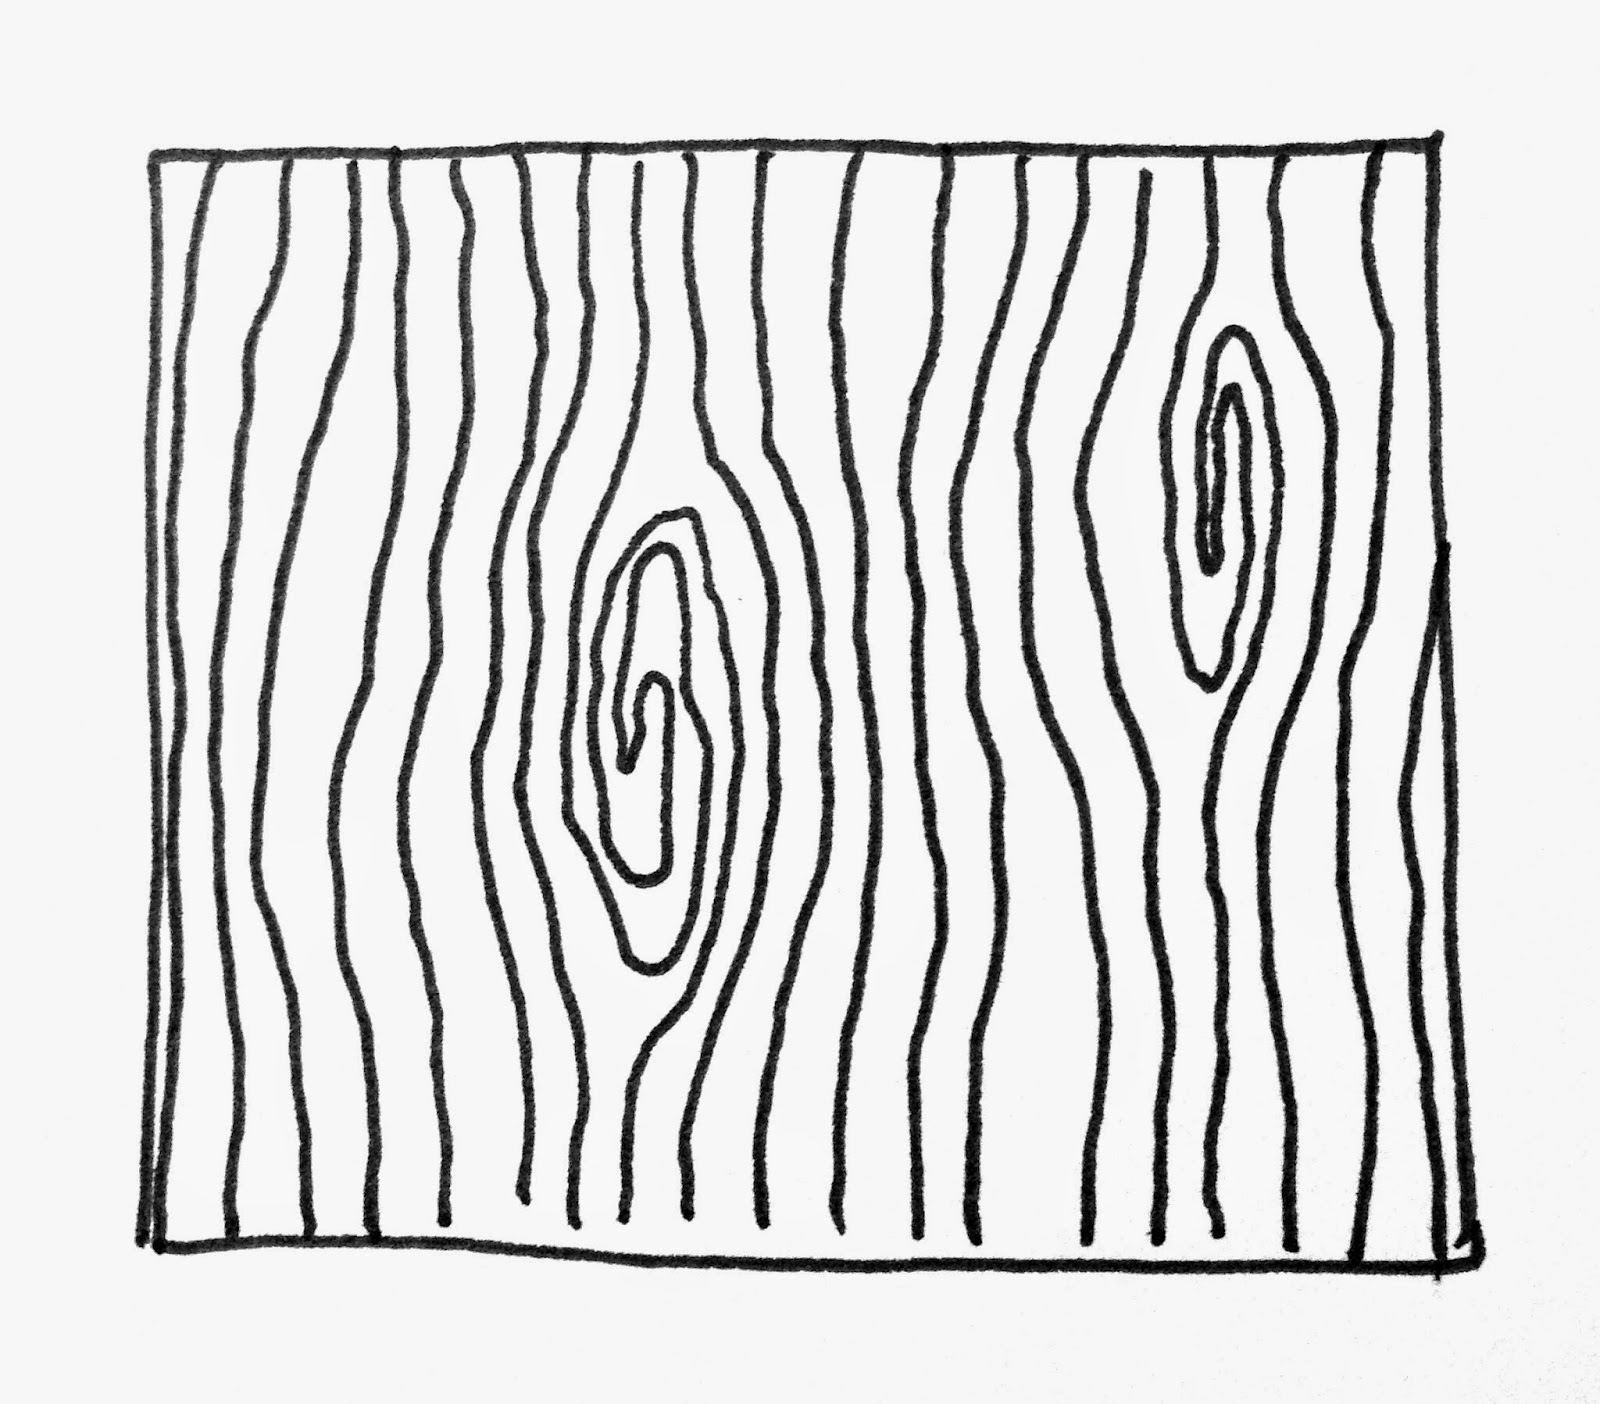 Line Art Wood Grain : A few scraps do the woodgrain